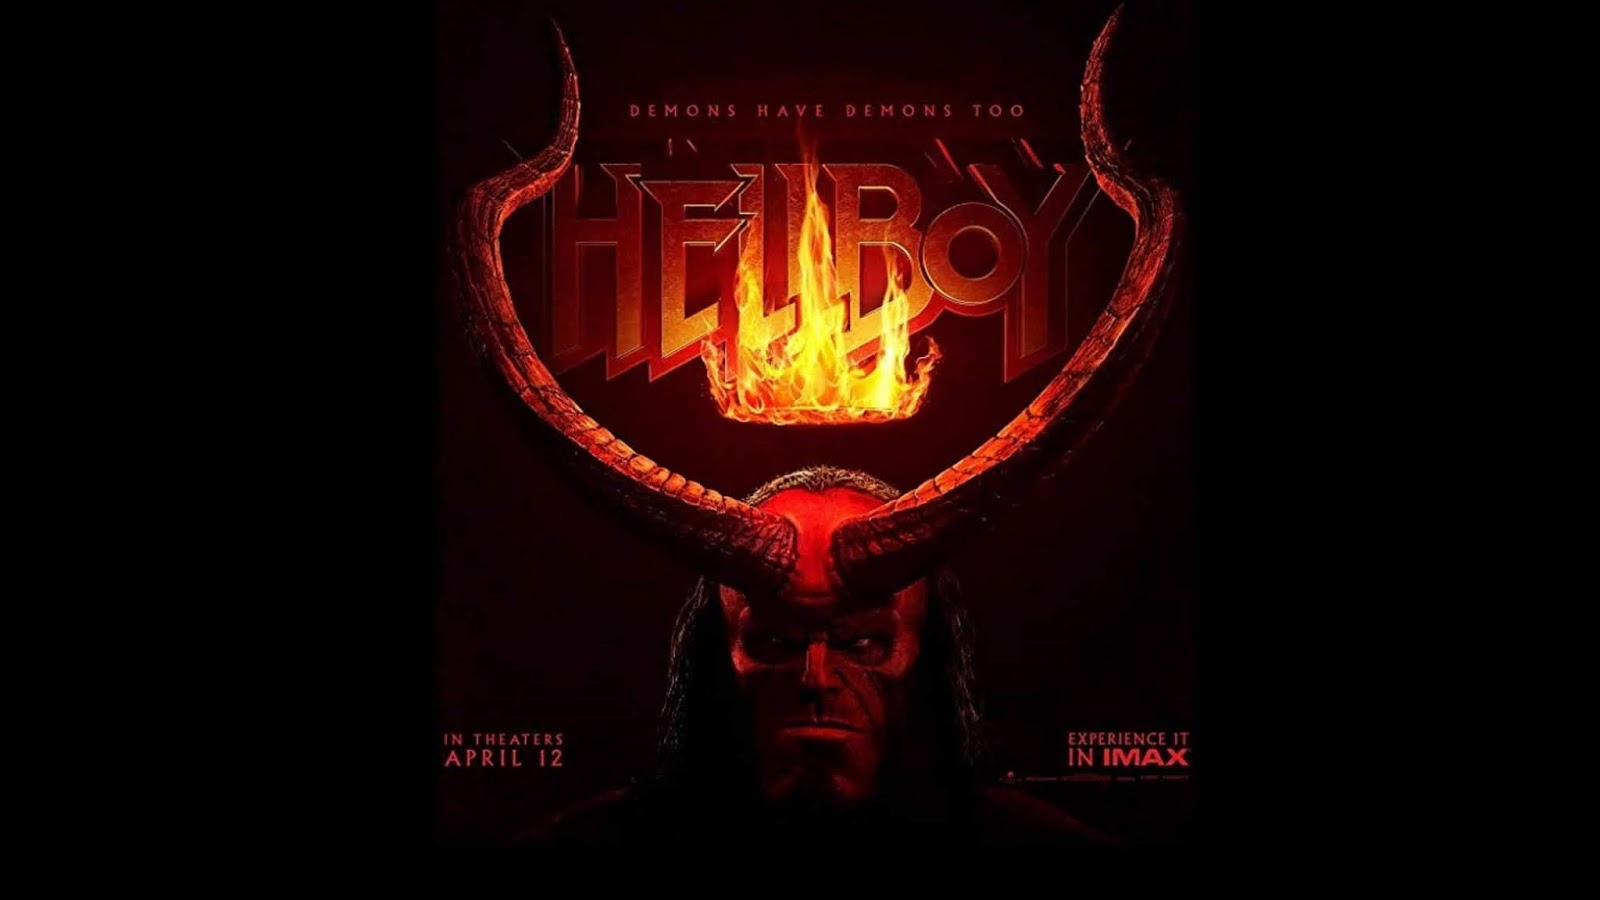 Enterainment: Hellboy 2019 Official Trailer Out Now